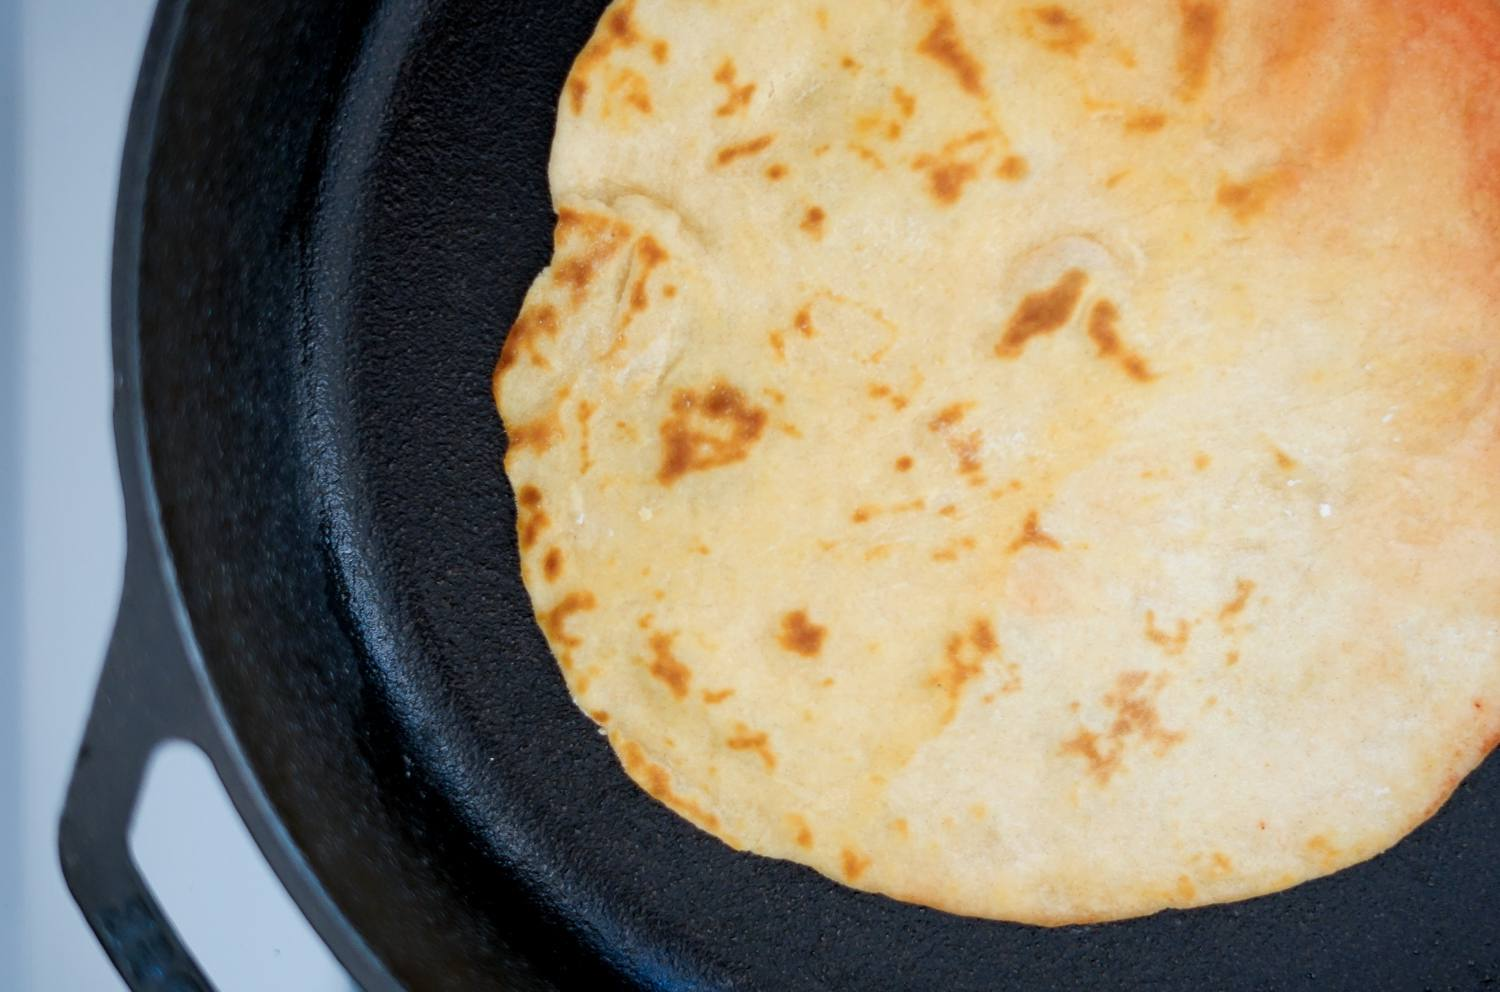 Roti is toasted until golden brown